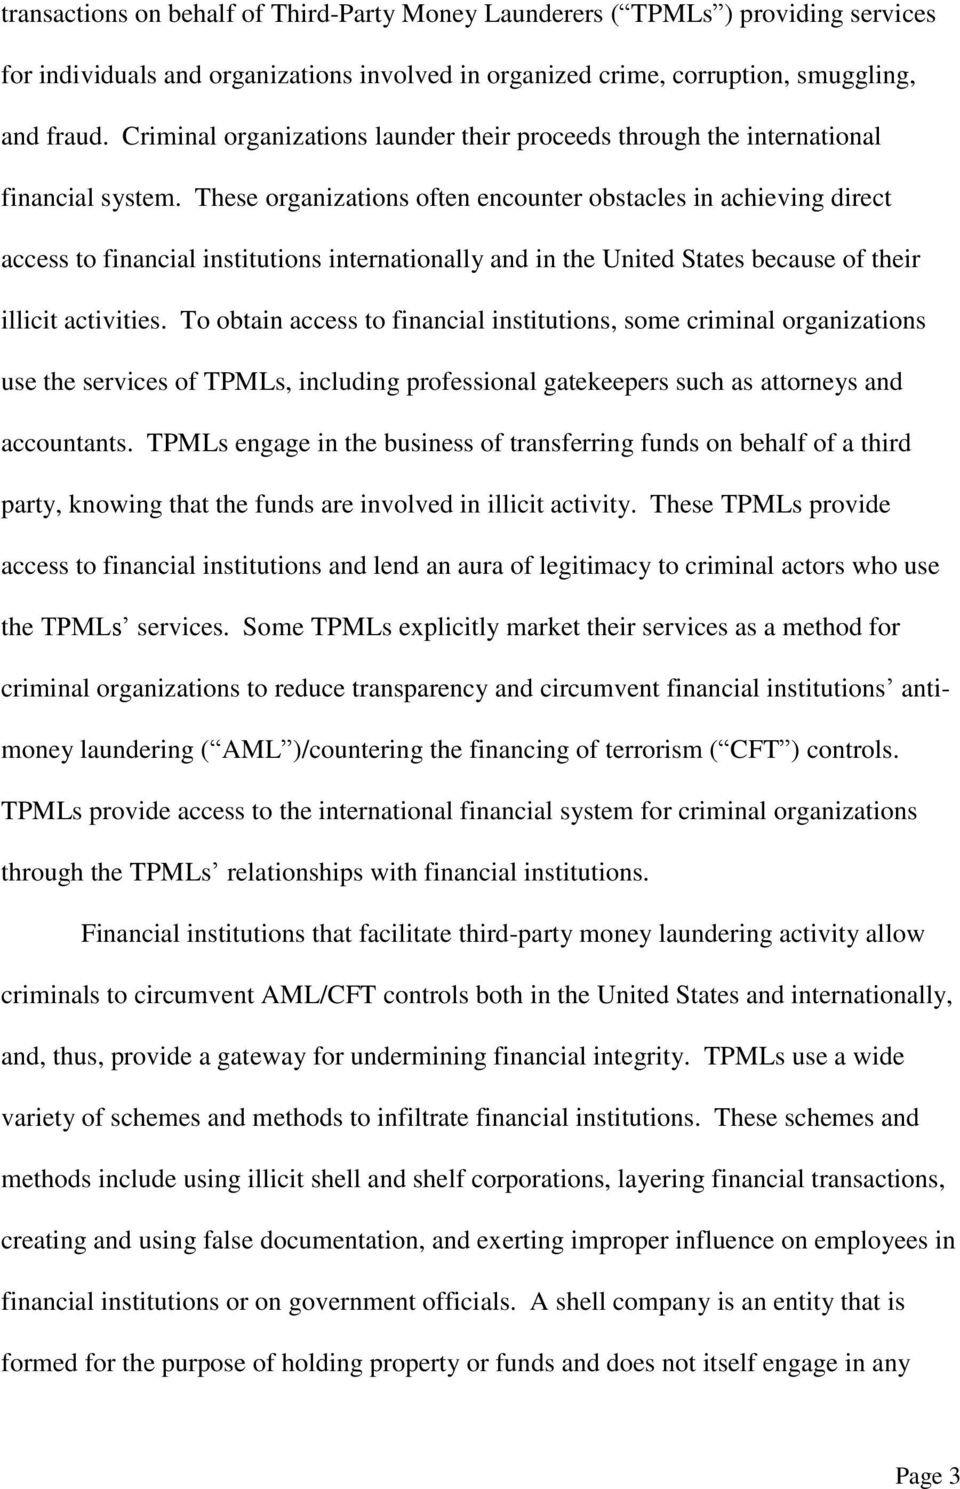 These organizations often encounter obstacles in achieving direct access to financial institutions internationally and in the United States because of their illicit activities.